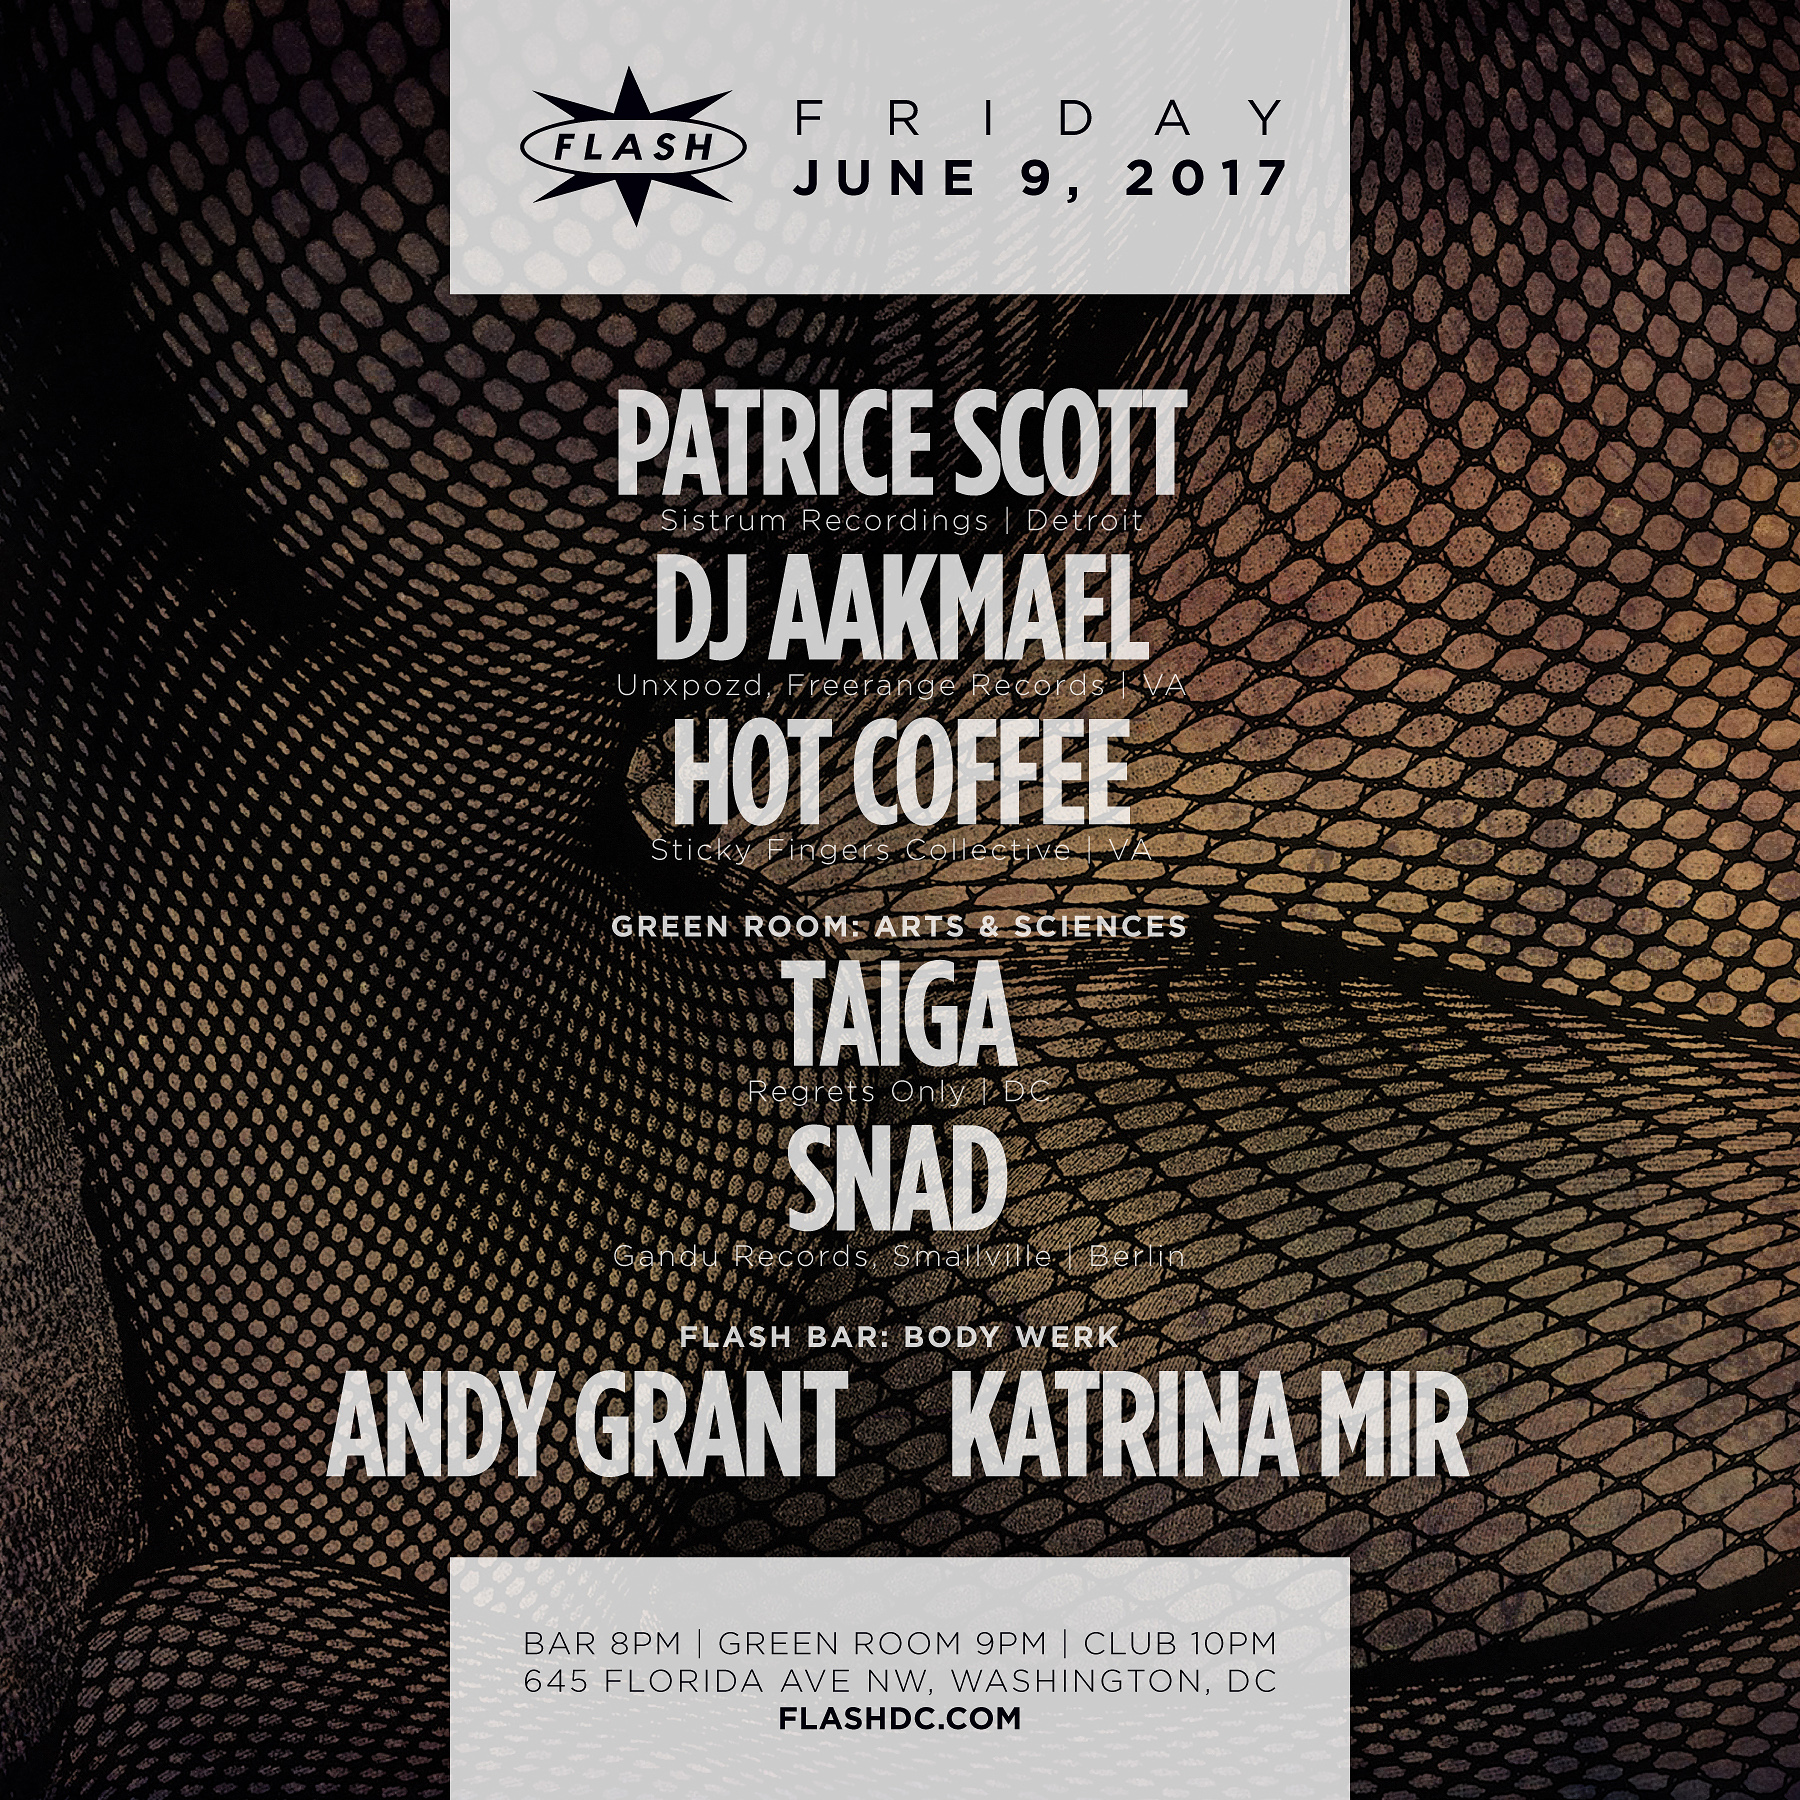 Patrice Scott / DJ Aakmael / Hot Coffee / Arts & Sciences / Body Werk event thumbnail